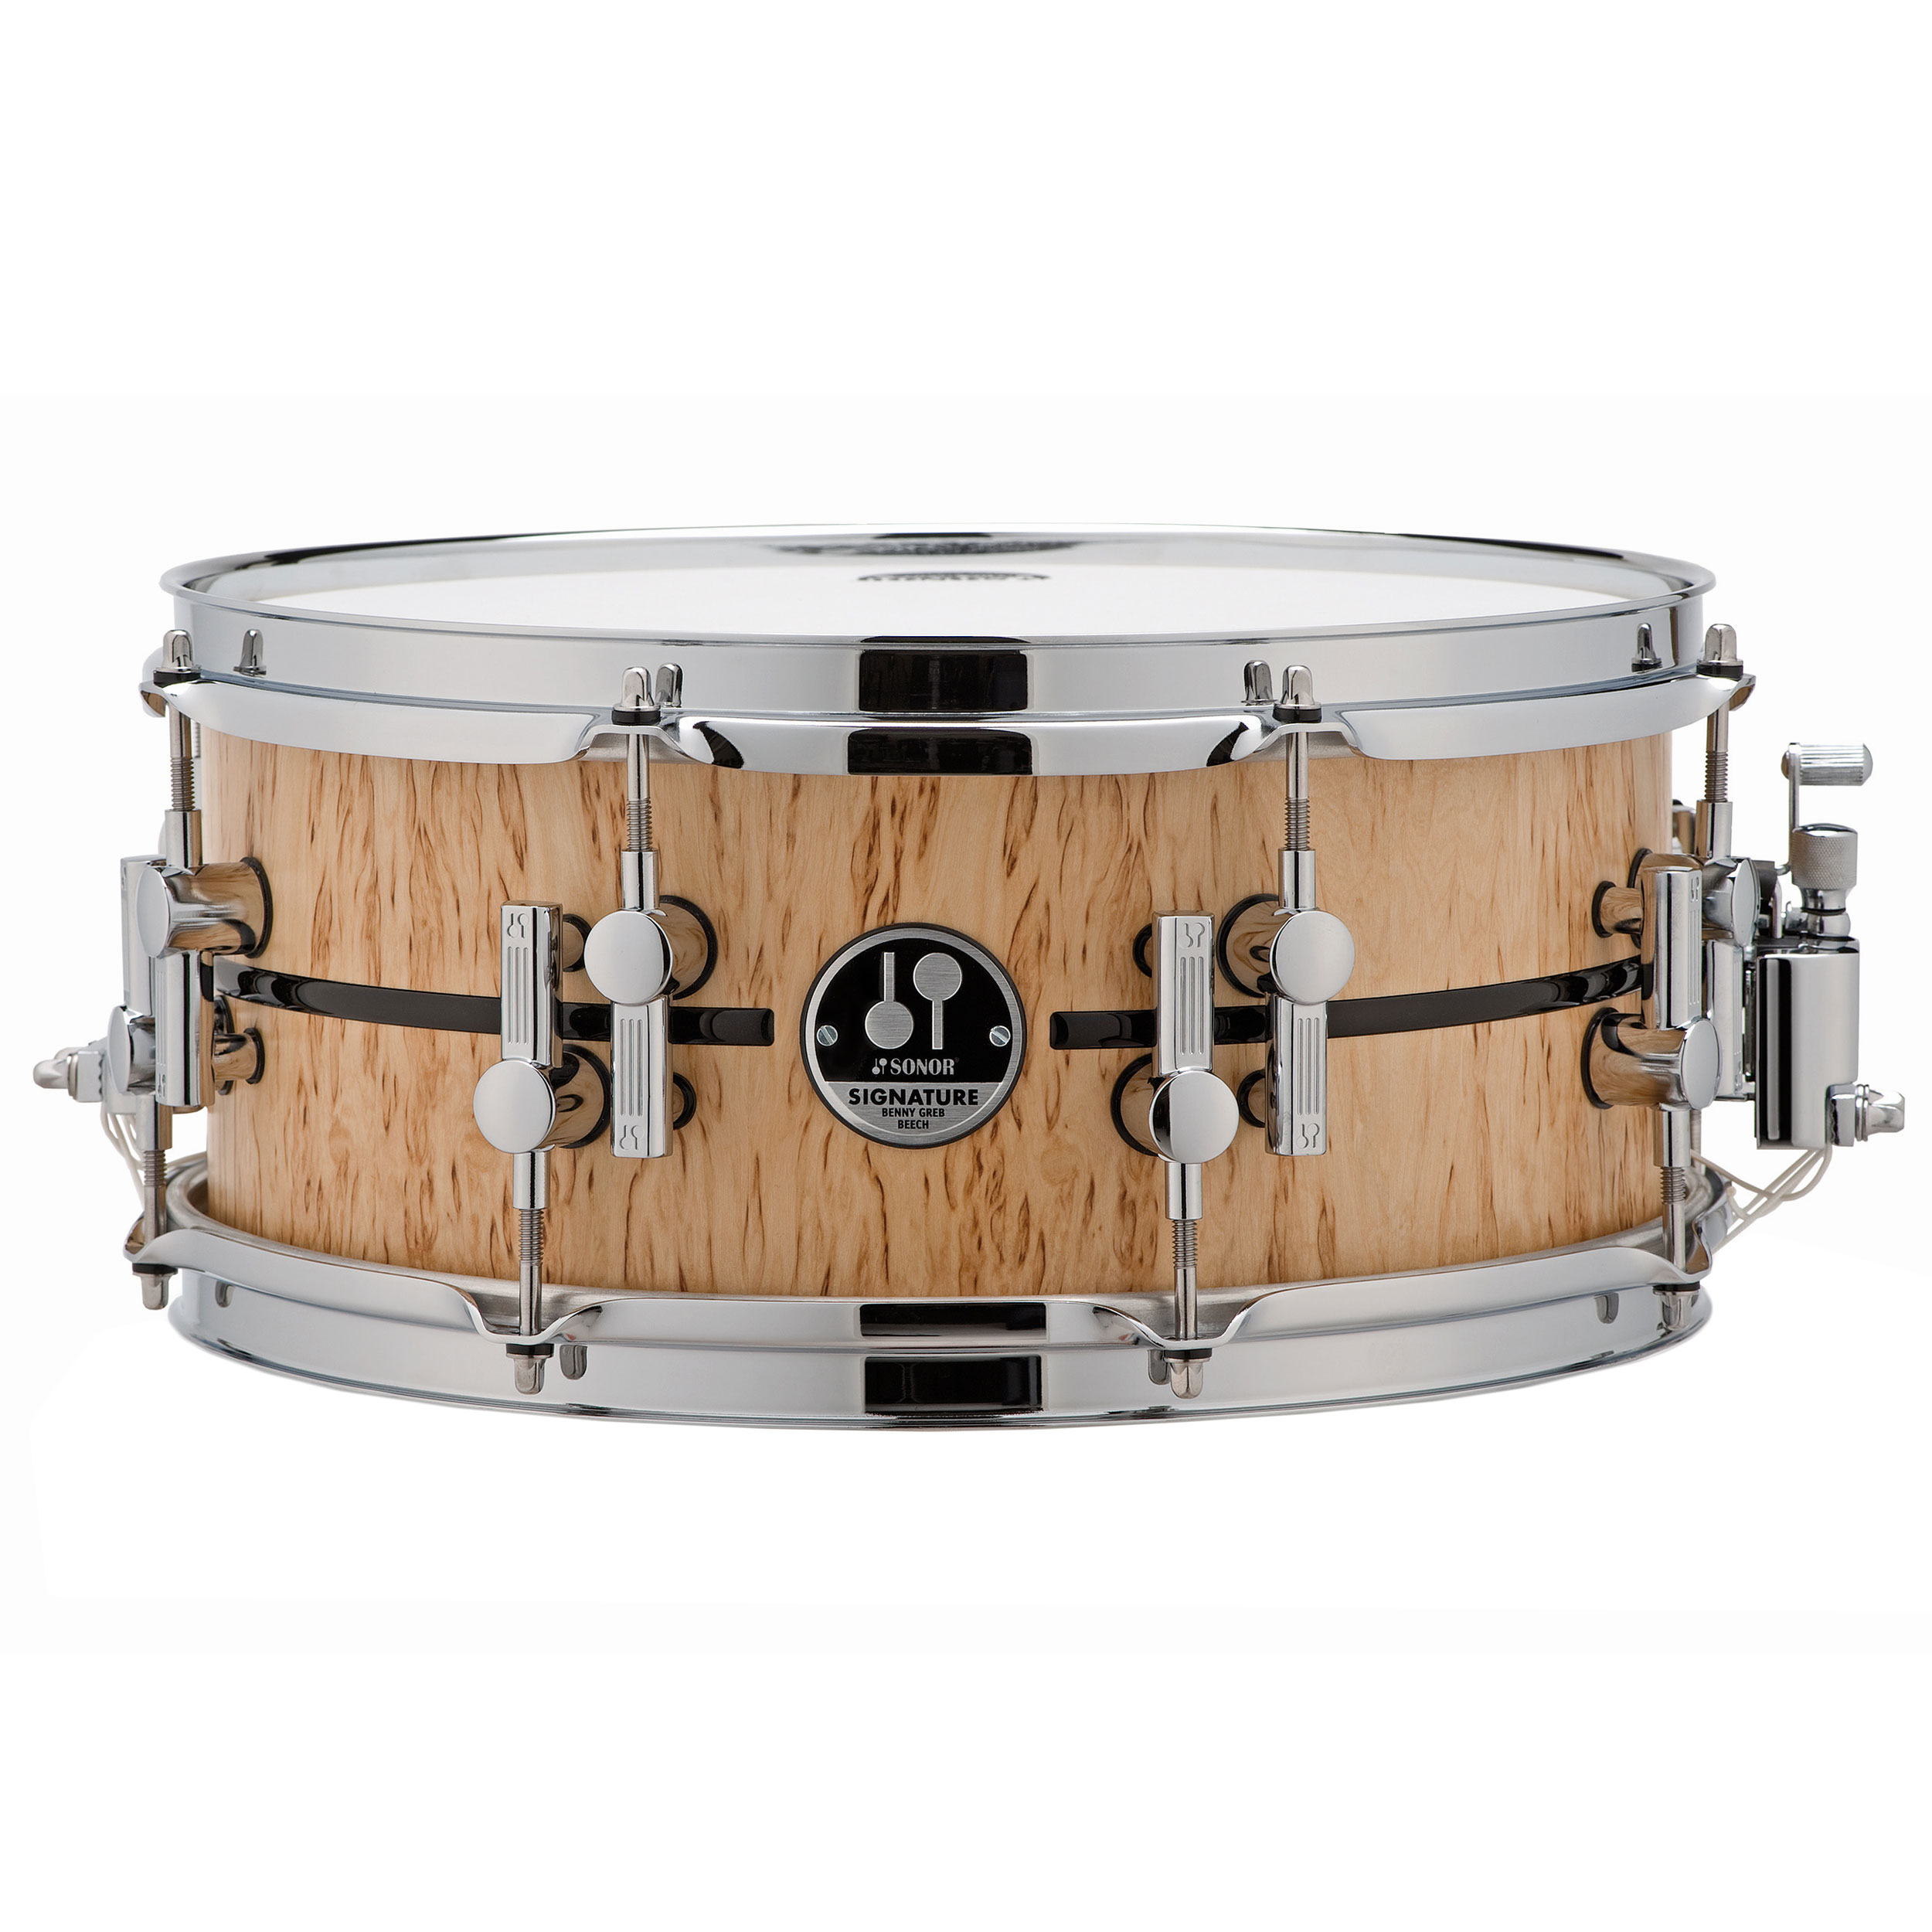 "Sonor 13"" x 5.75"" Benny Greb Signature Beech Snare Drum"